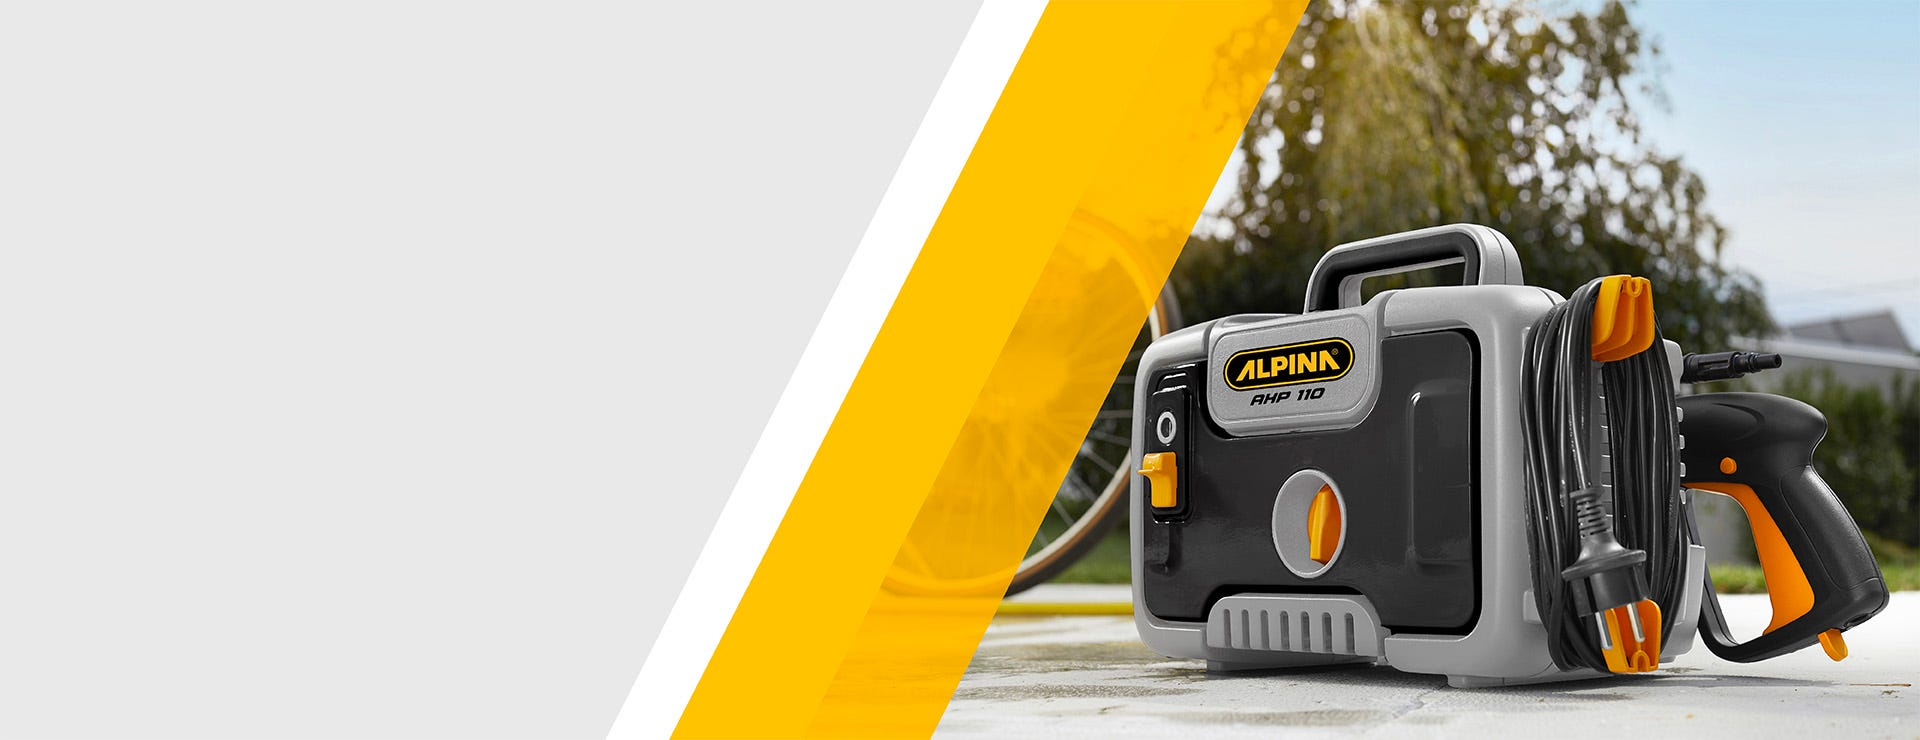 Alpina high pressure cleaner